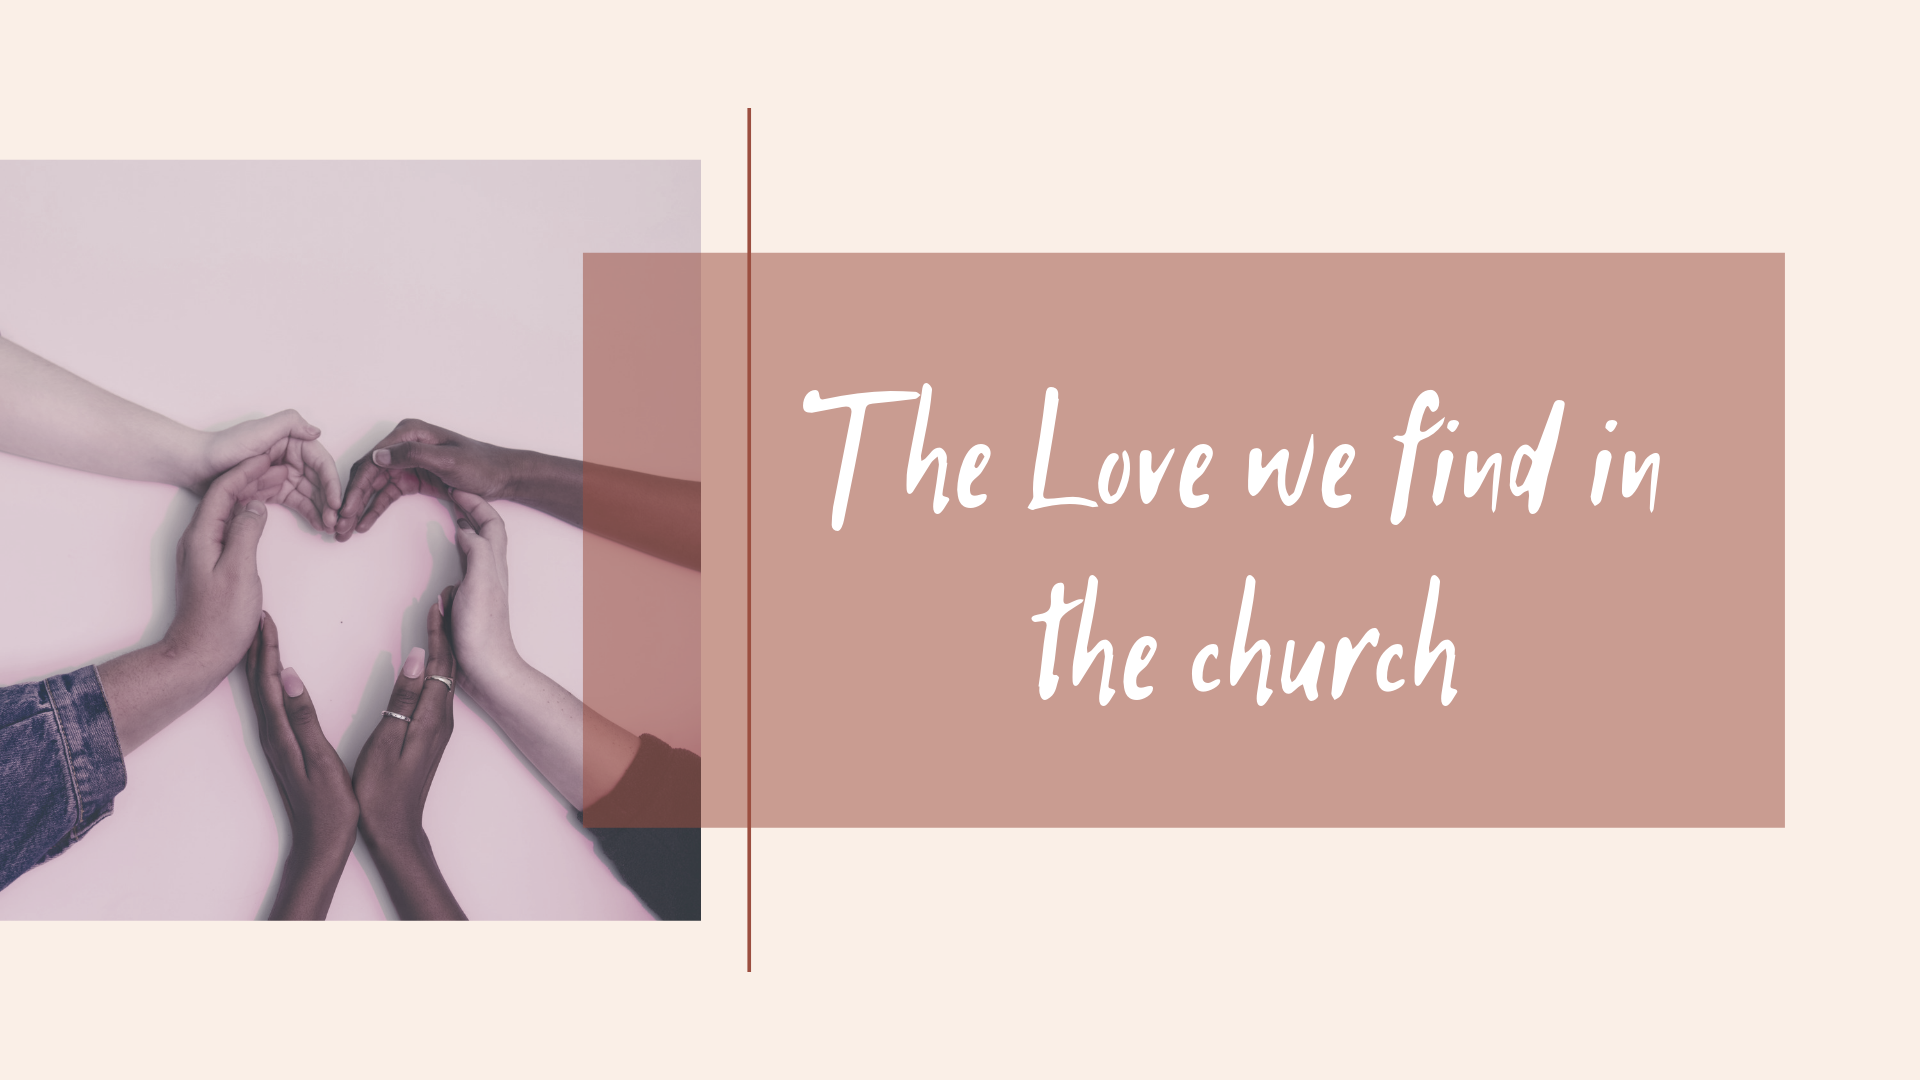 ICA Kyiv Sunday, June 2, 2019. The Love we find in the church